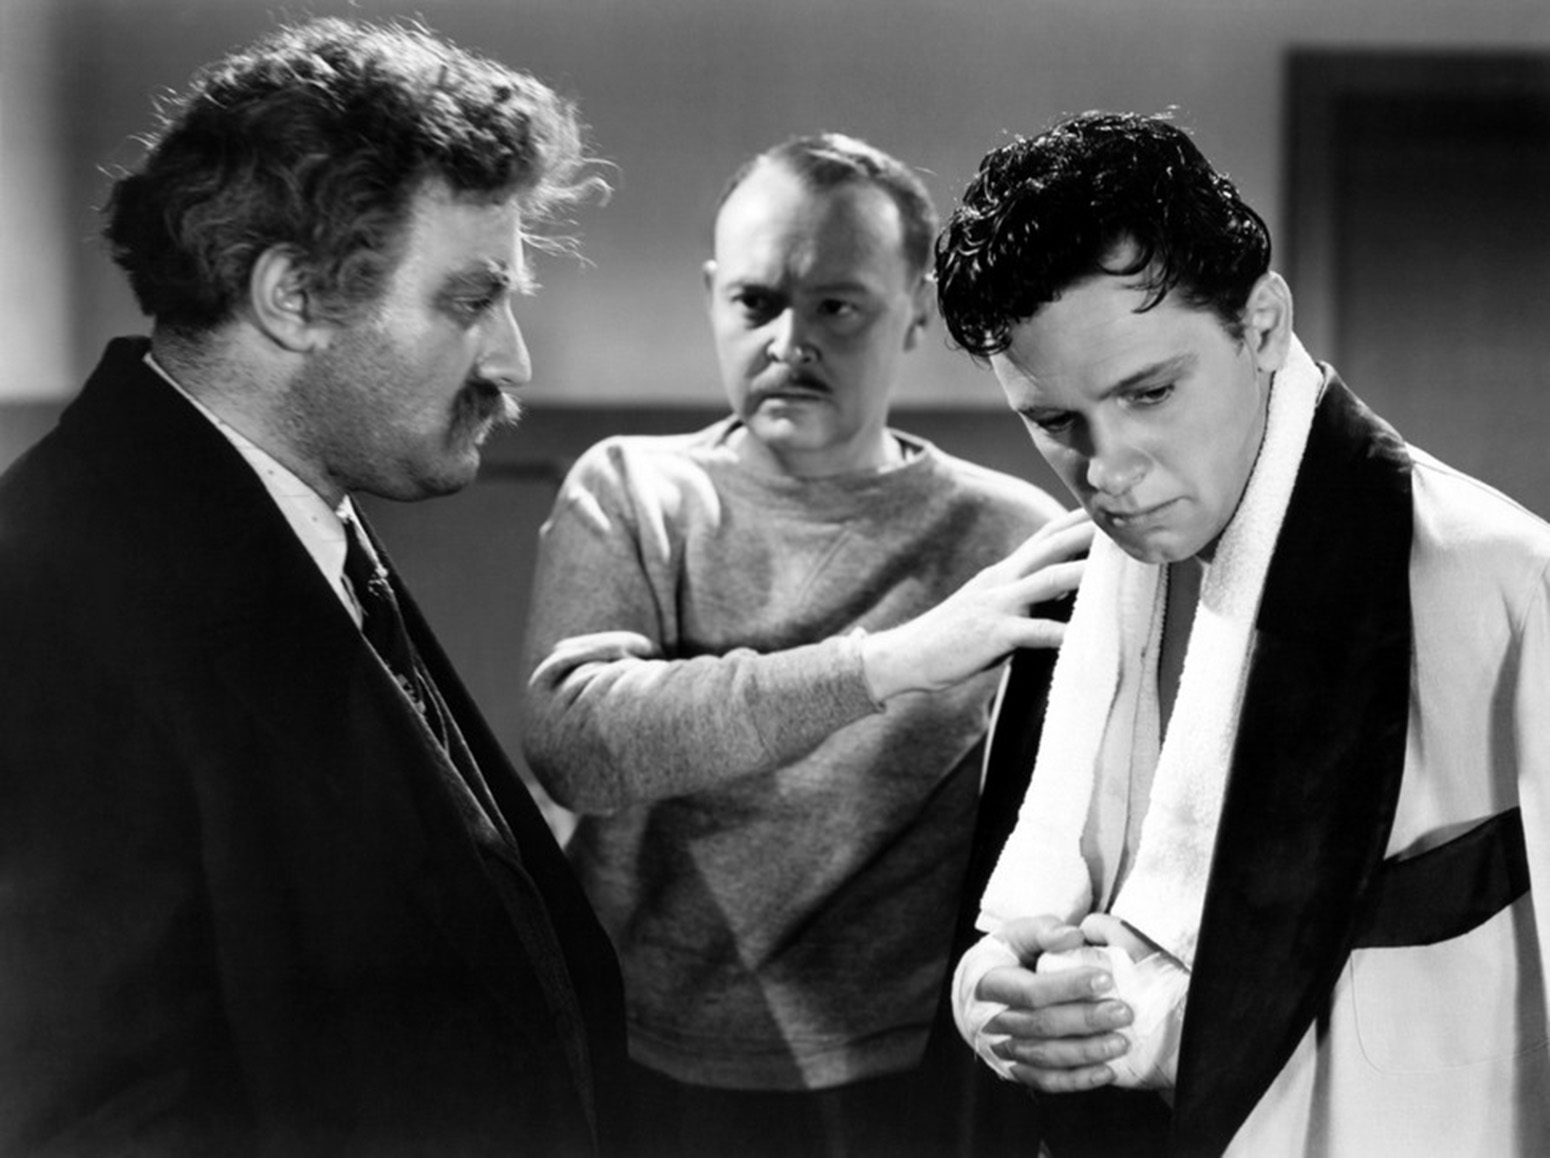 From left: Lee J. Cobb, Don Beddoe and William Holden in Golden Boy.